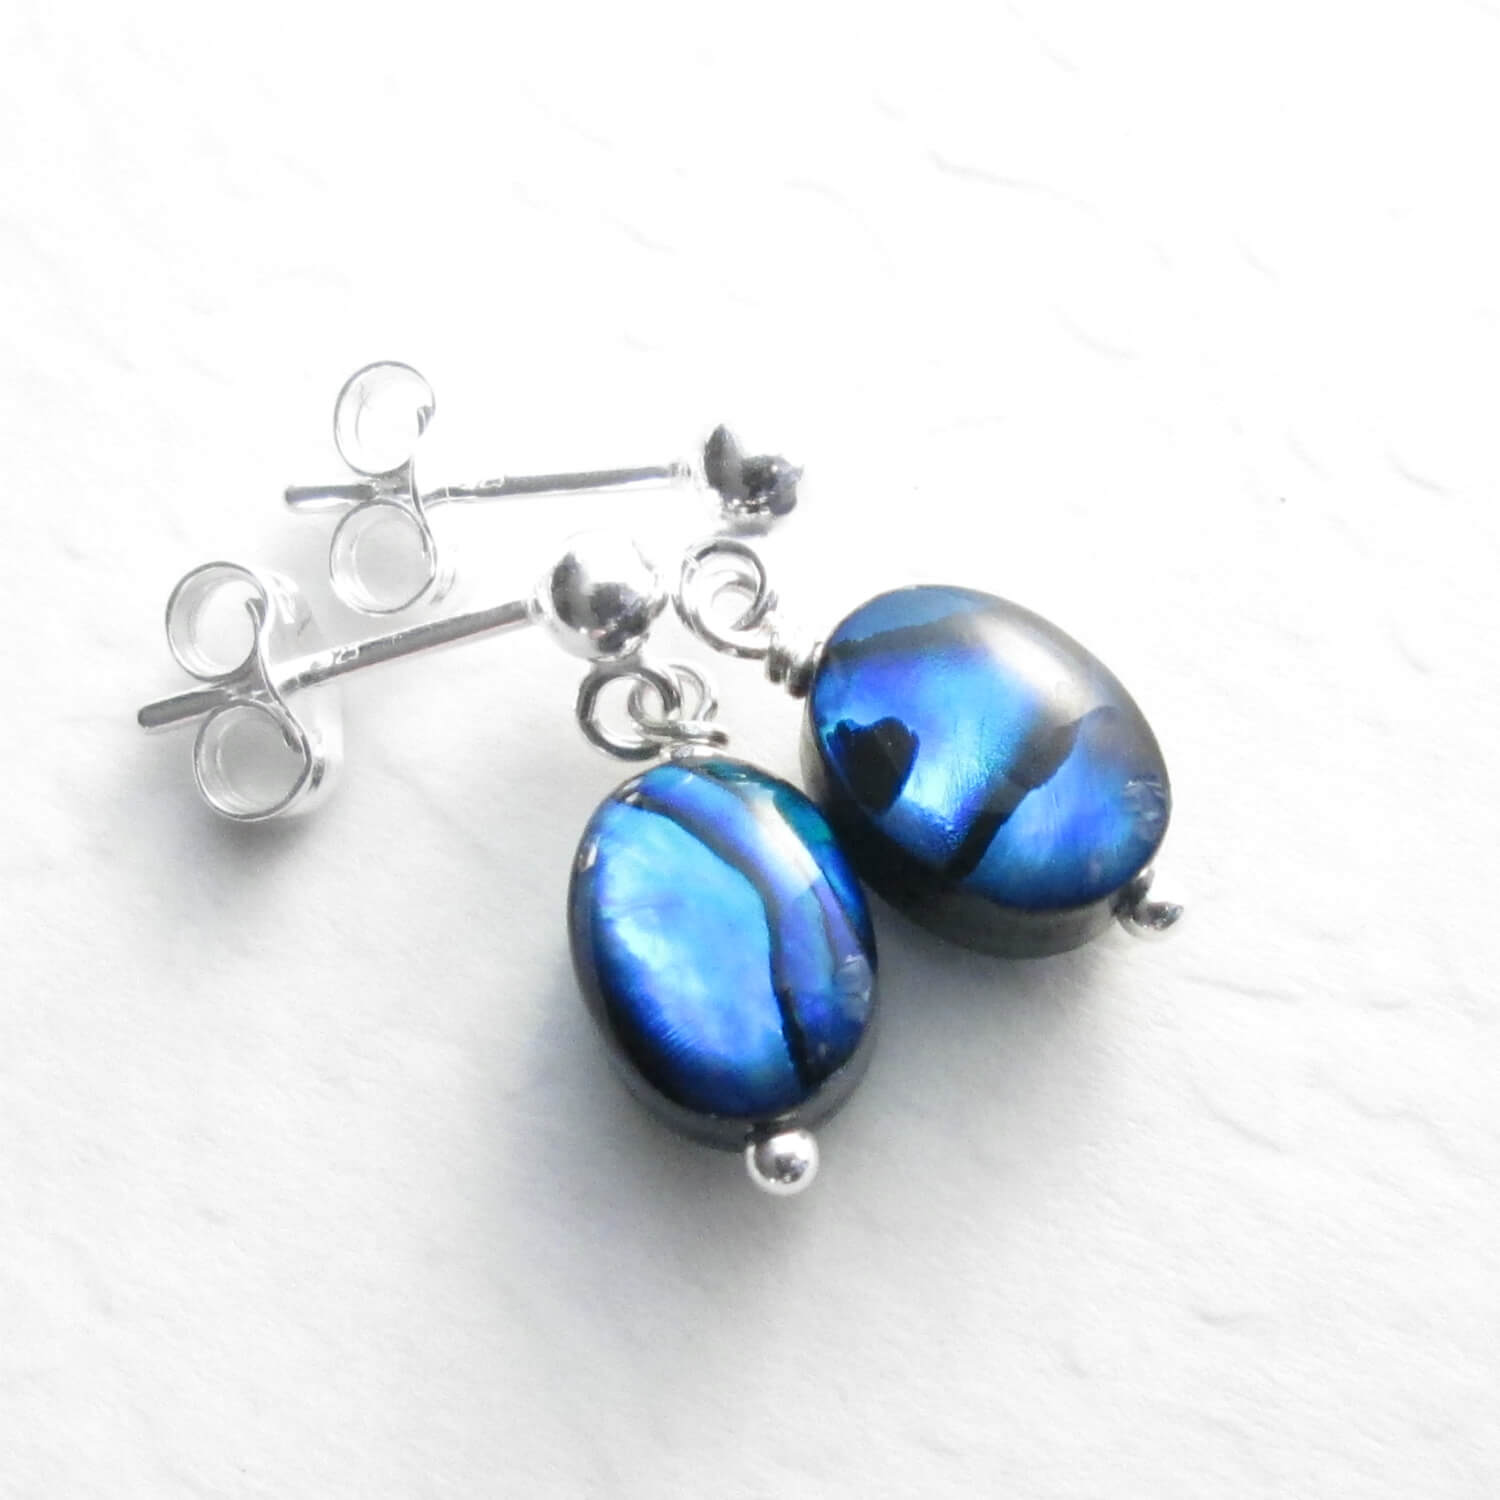 Small Blue Abalone Earrings